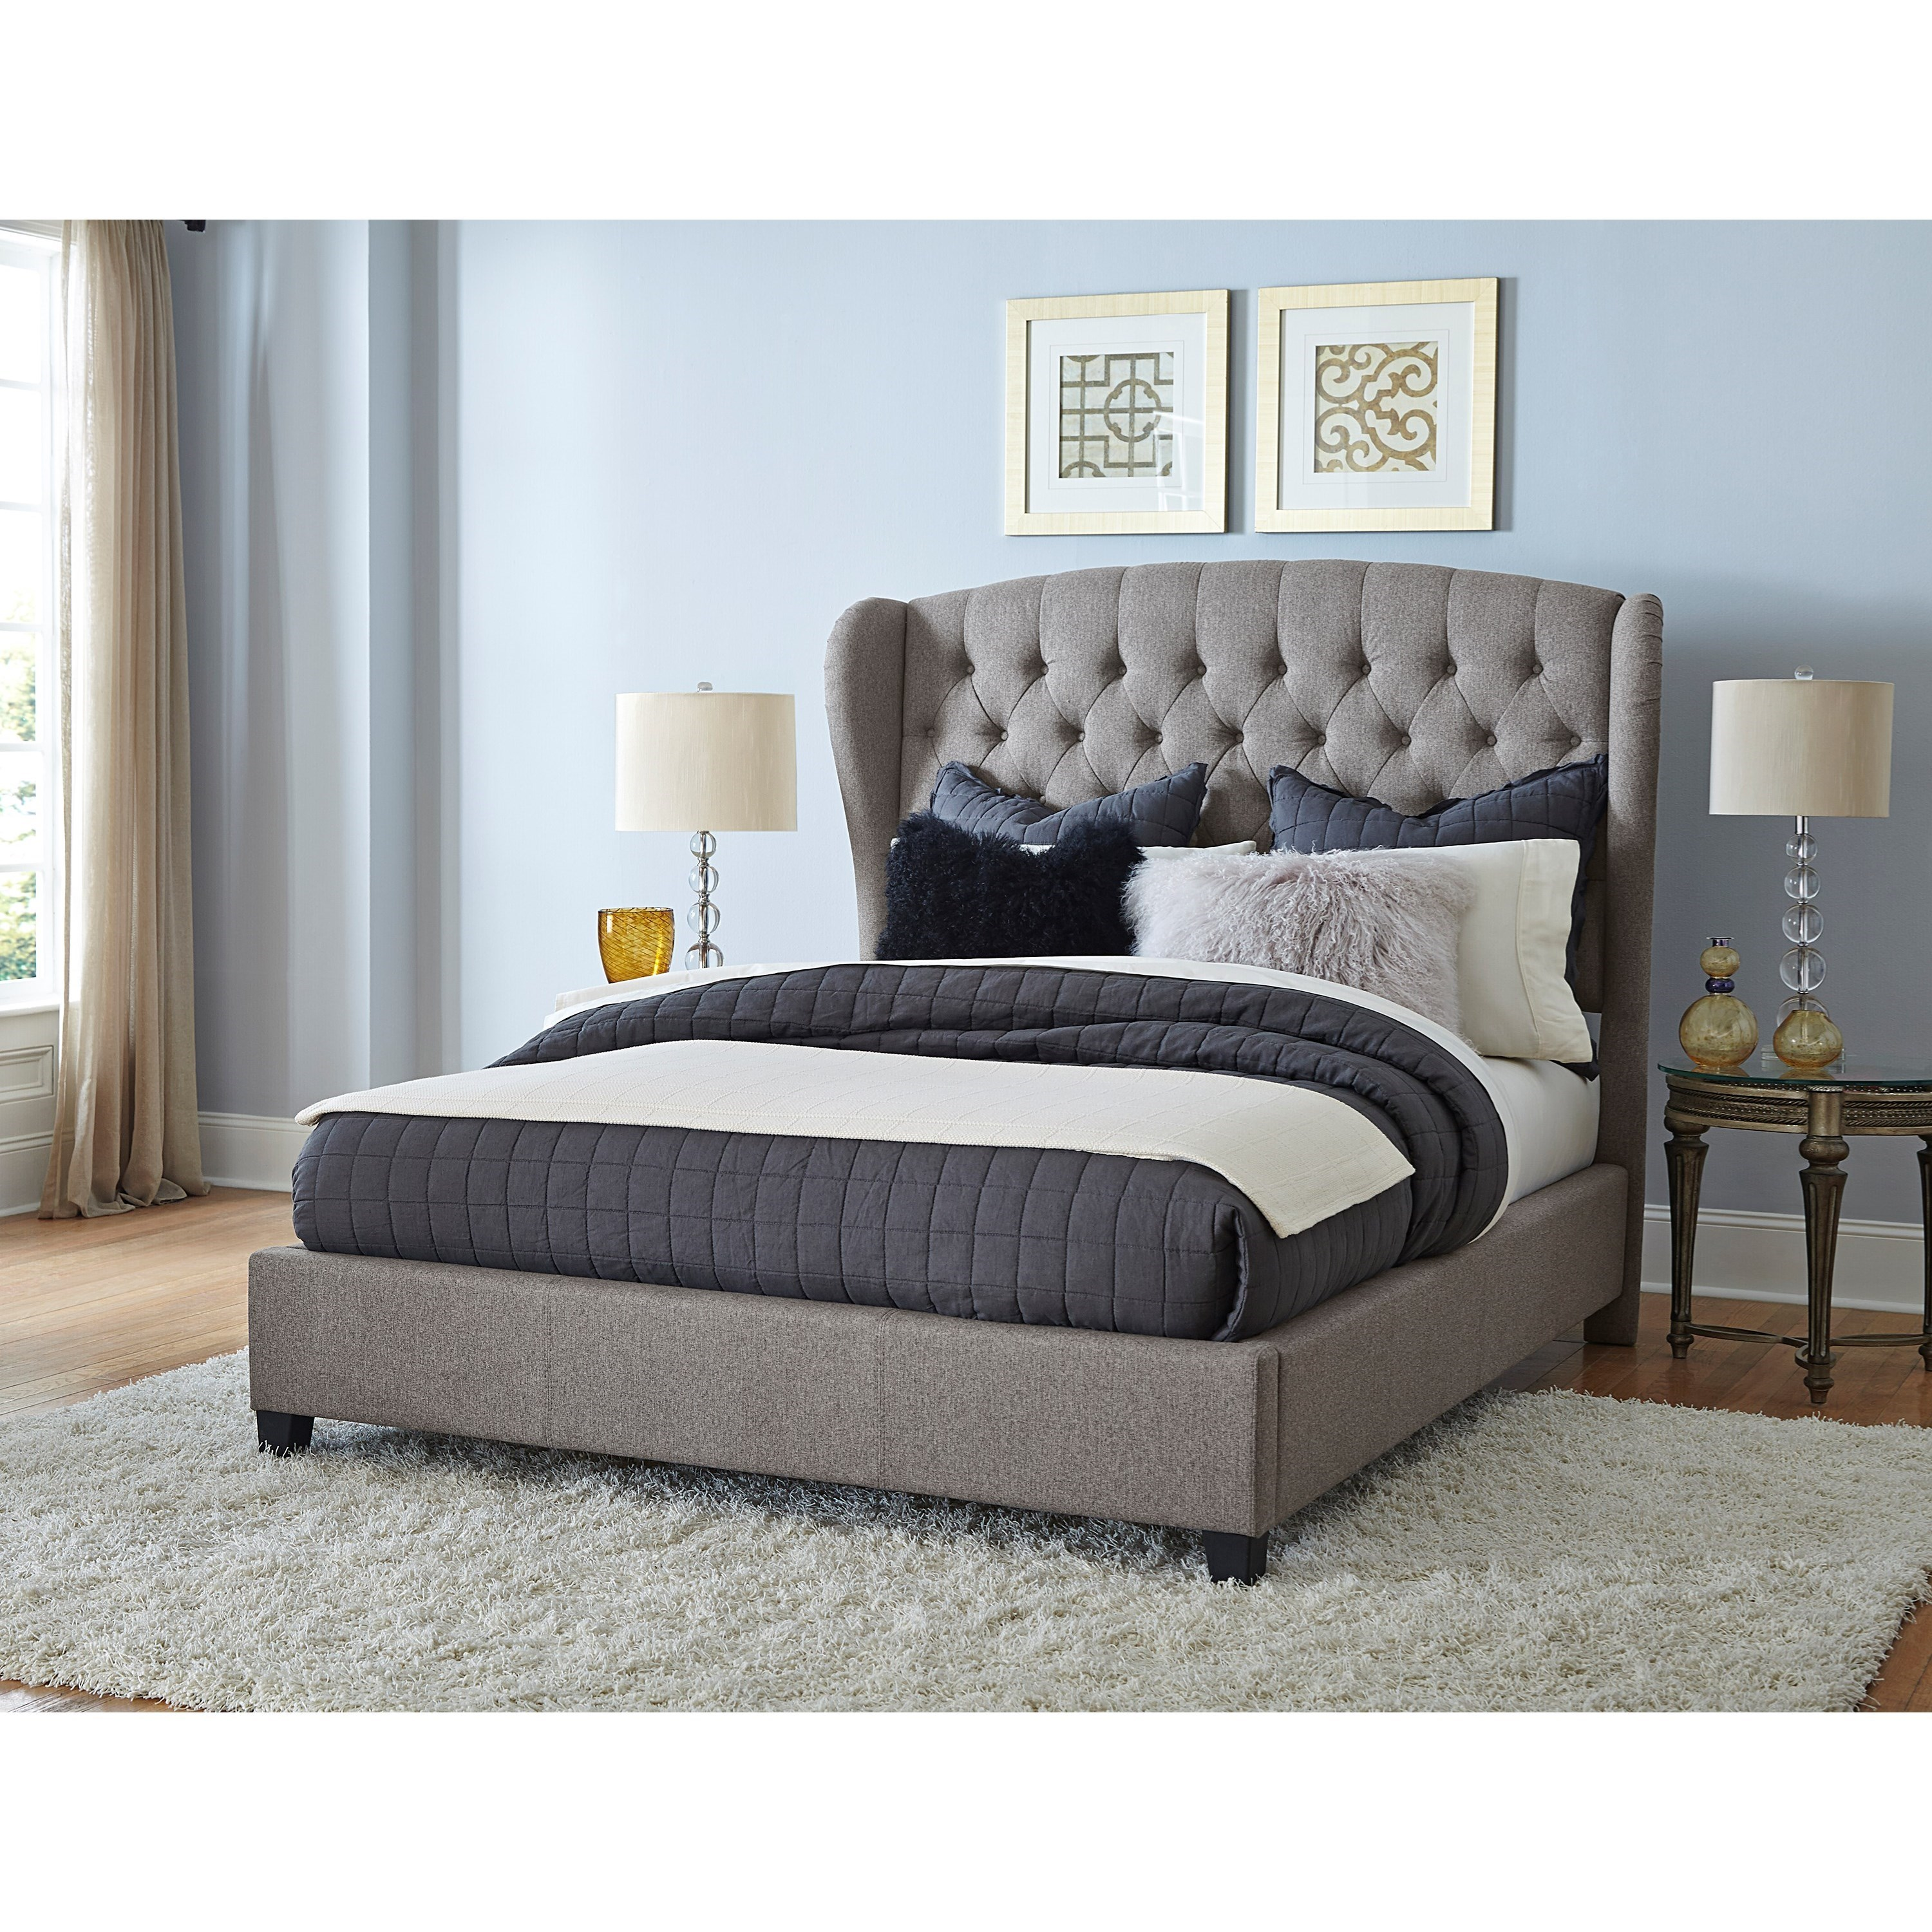 hillsdale upholstered beds upholstered queen bed set with wingback headboard